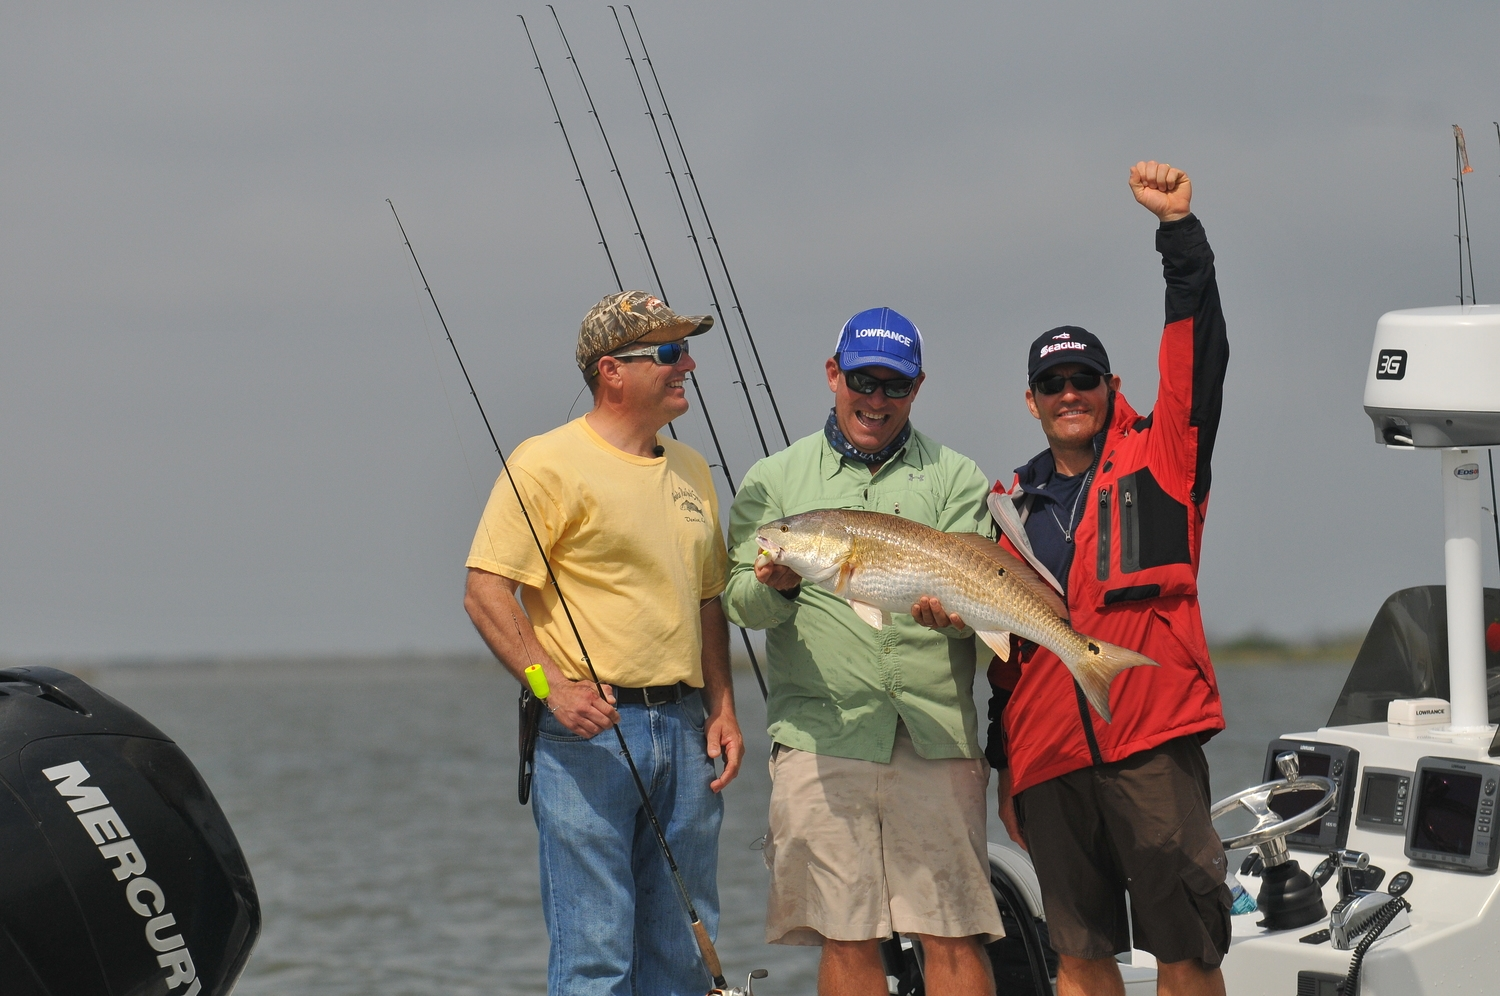 Winter cold fronts may require a slower approach and possibly live bait to get the bite